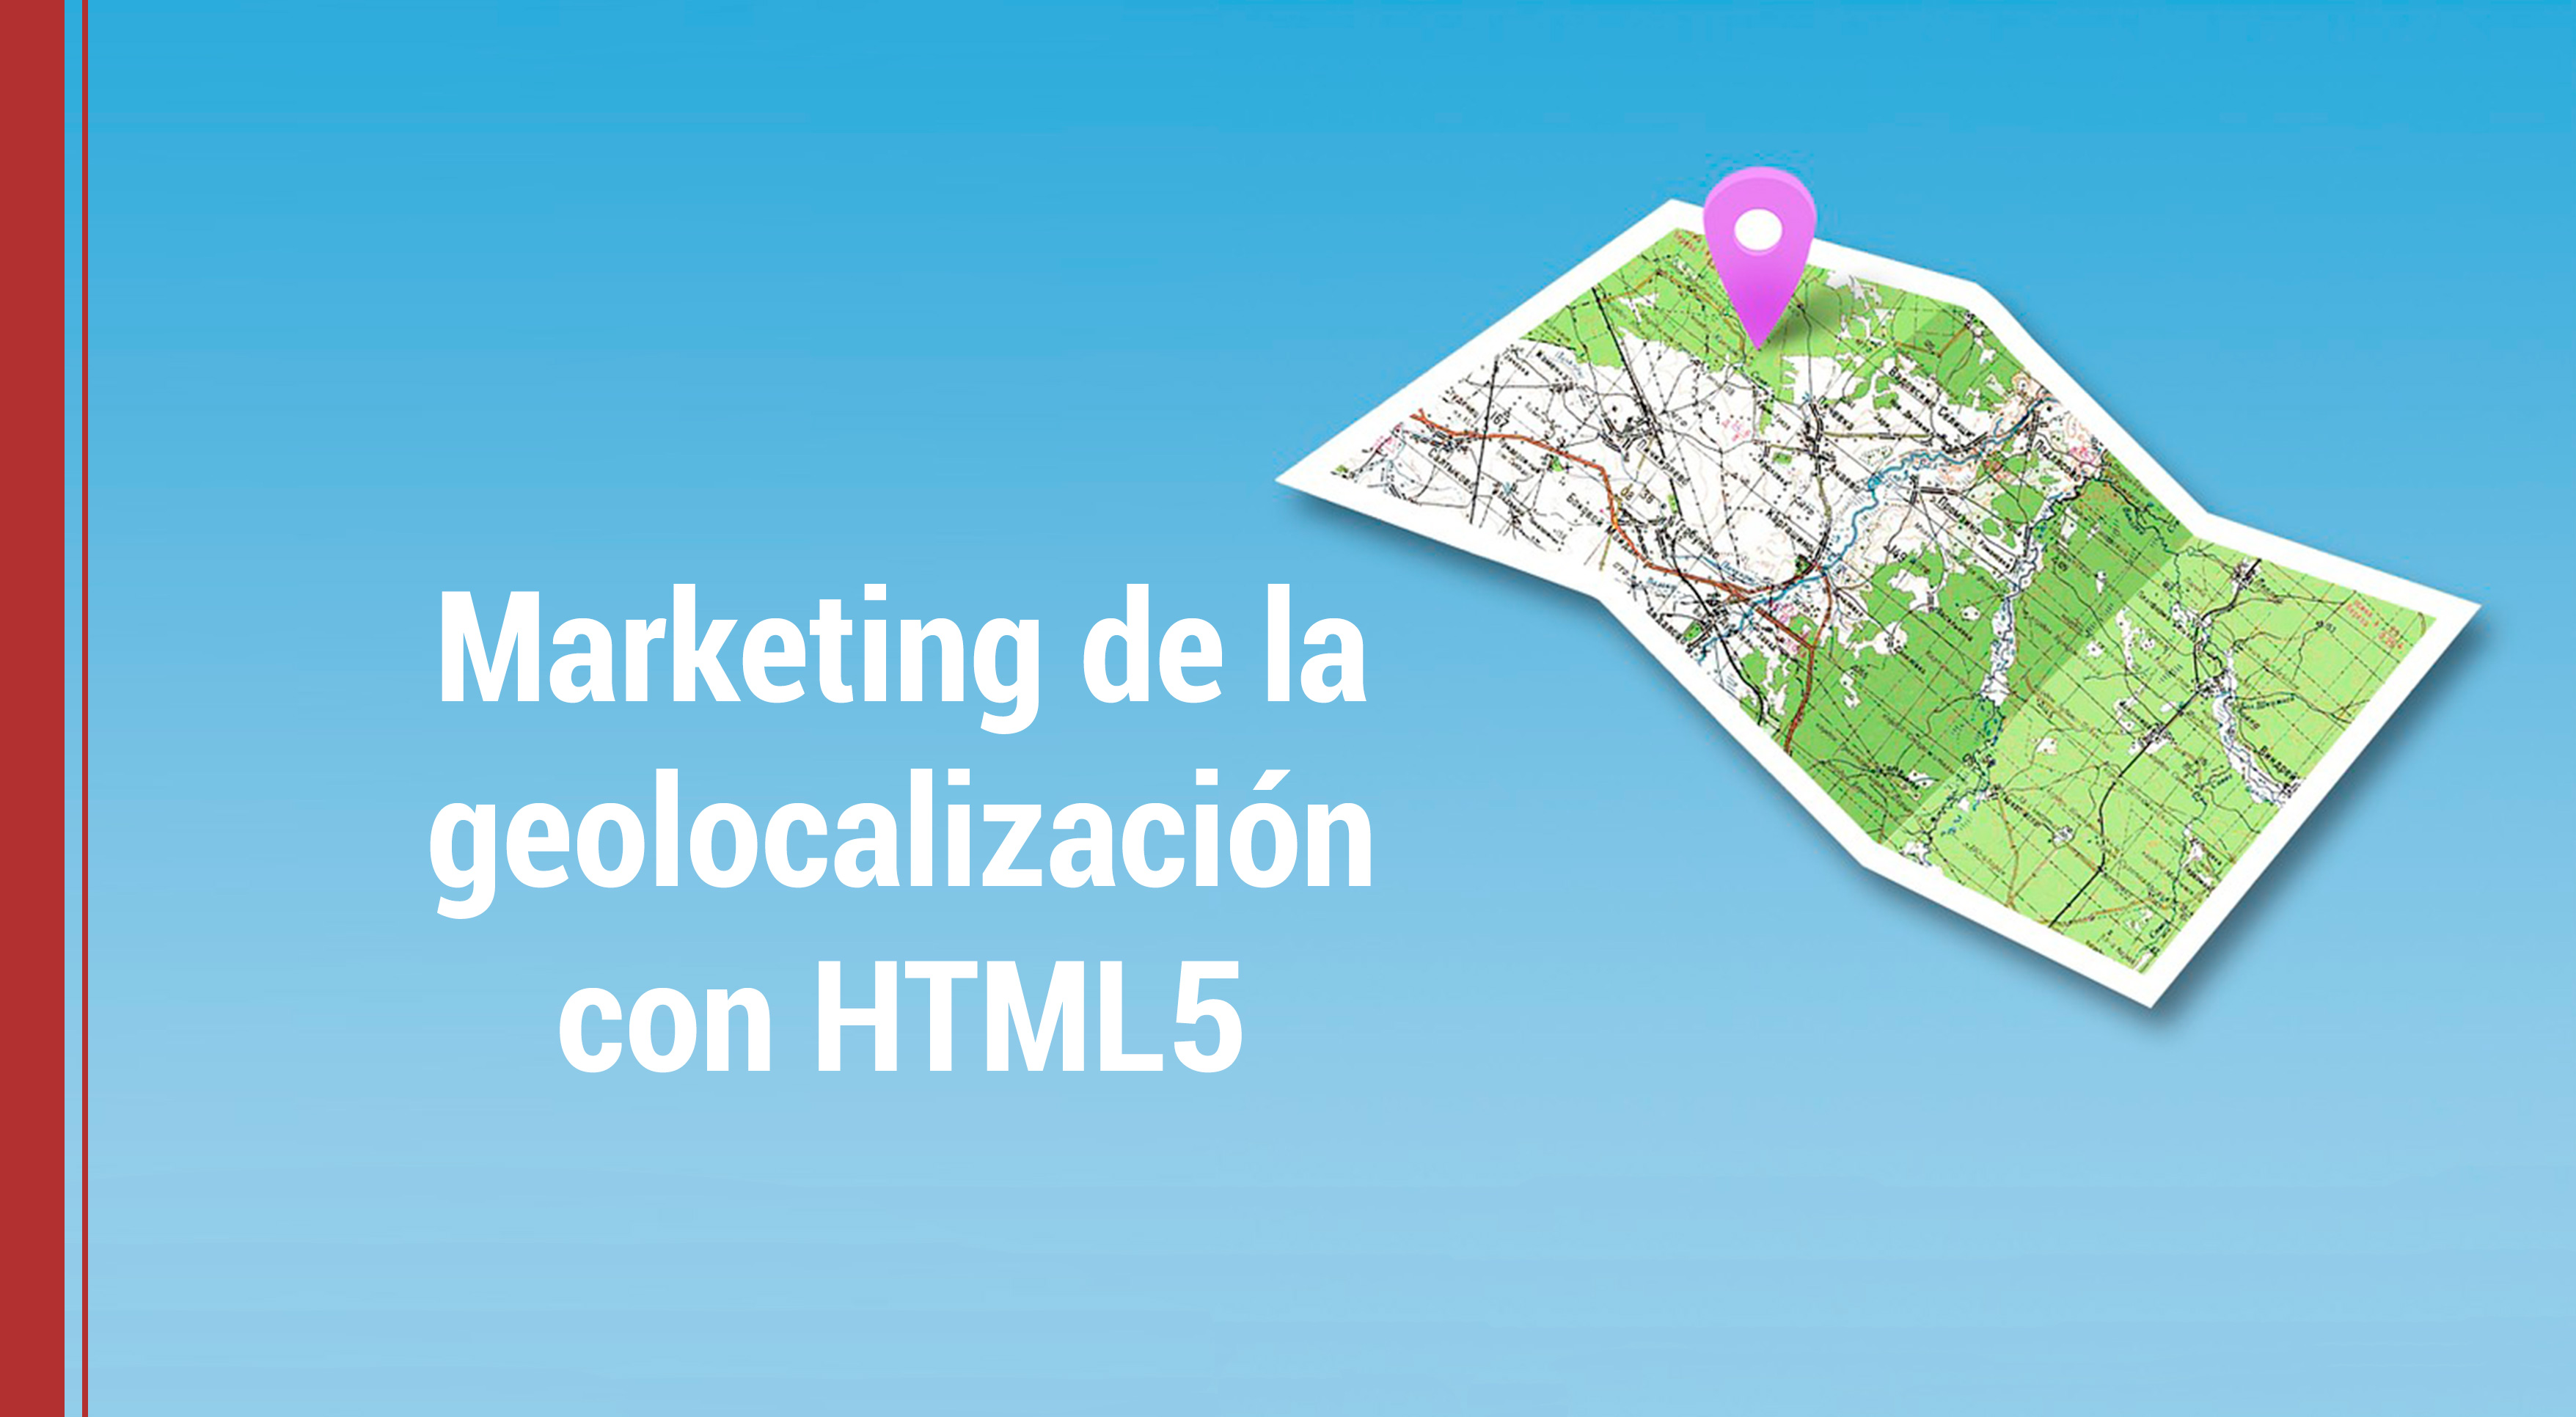 ventajas del marketing de geolocalizacion